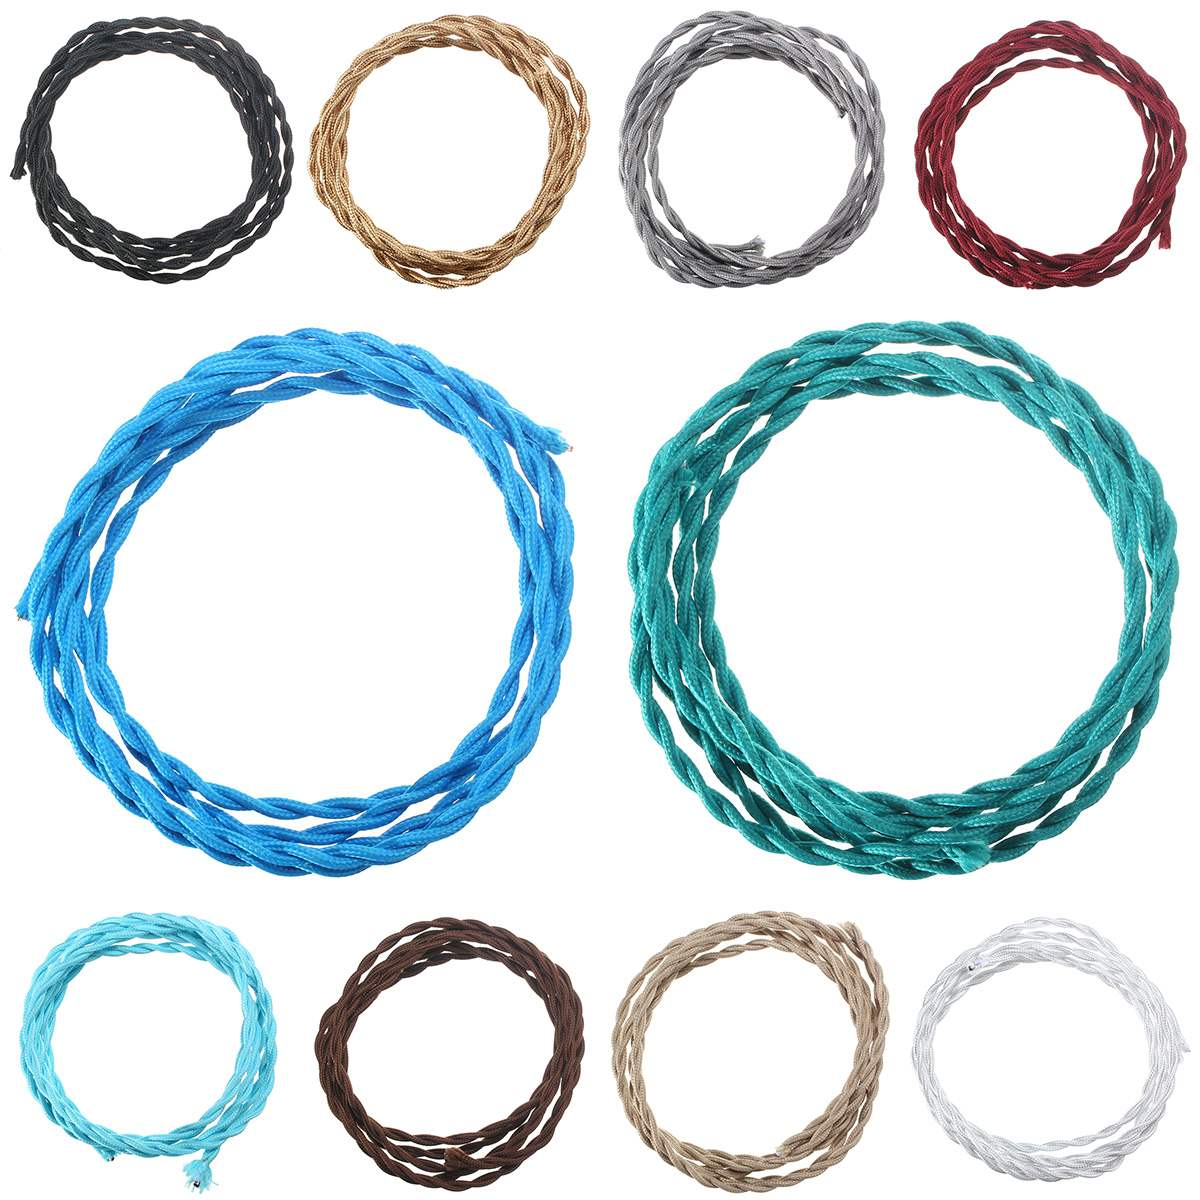 Hot Sale 1M 2 Core Vintage Twist Electrical Wire Color Braided Wire ...